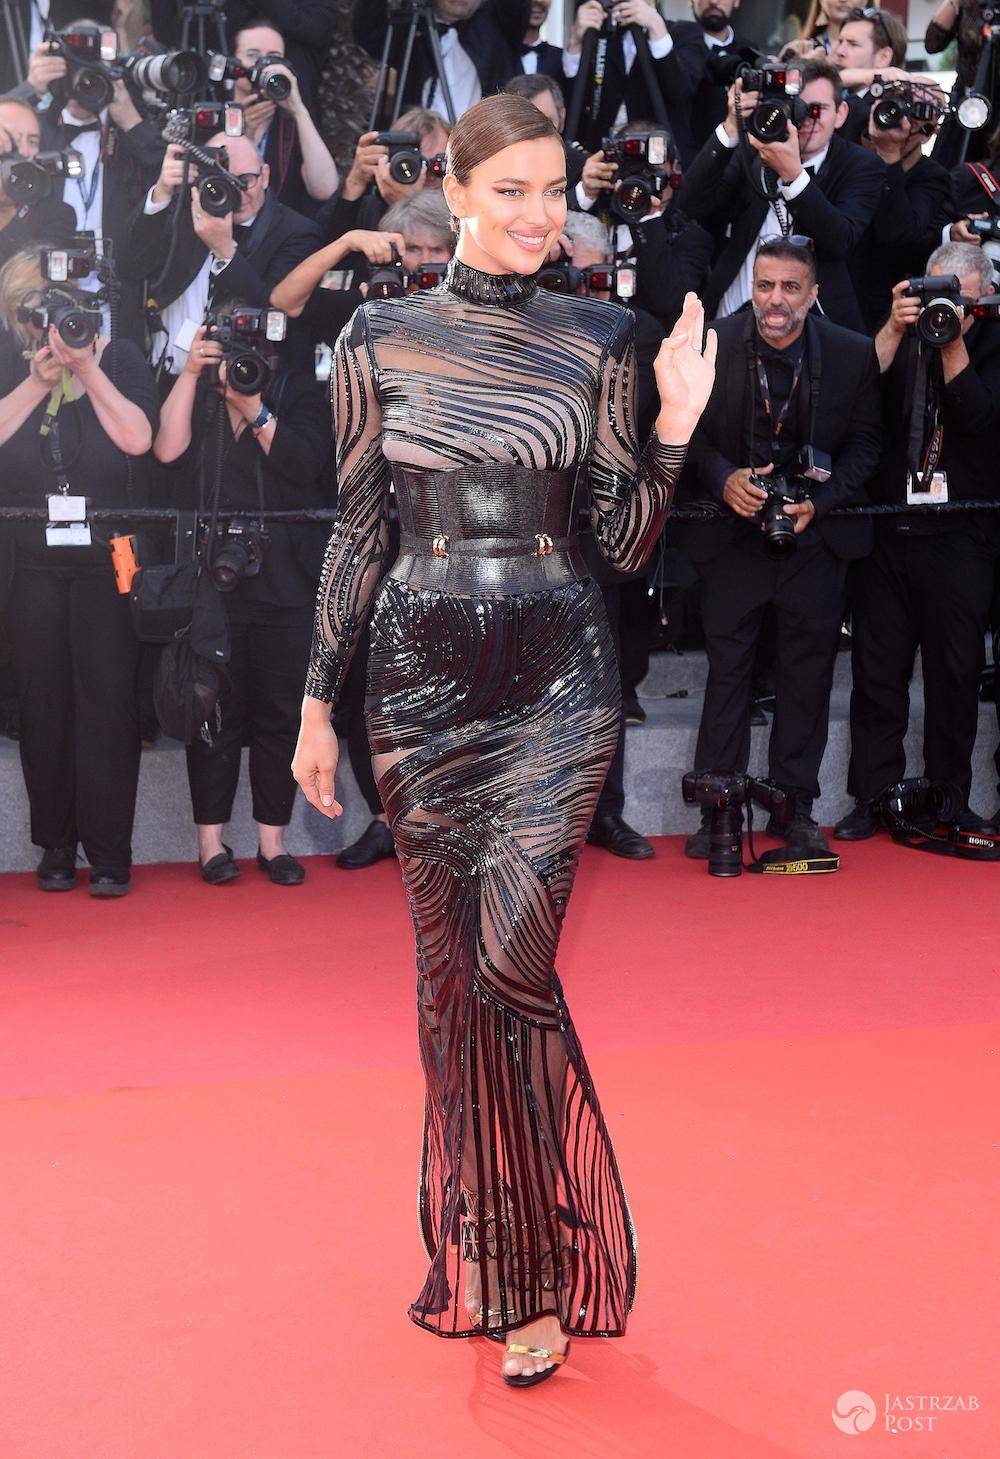 Irina Shayk - Cannes 2017, The Beguiled